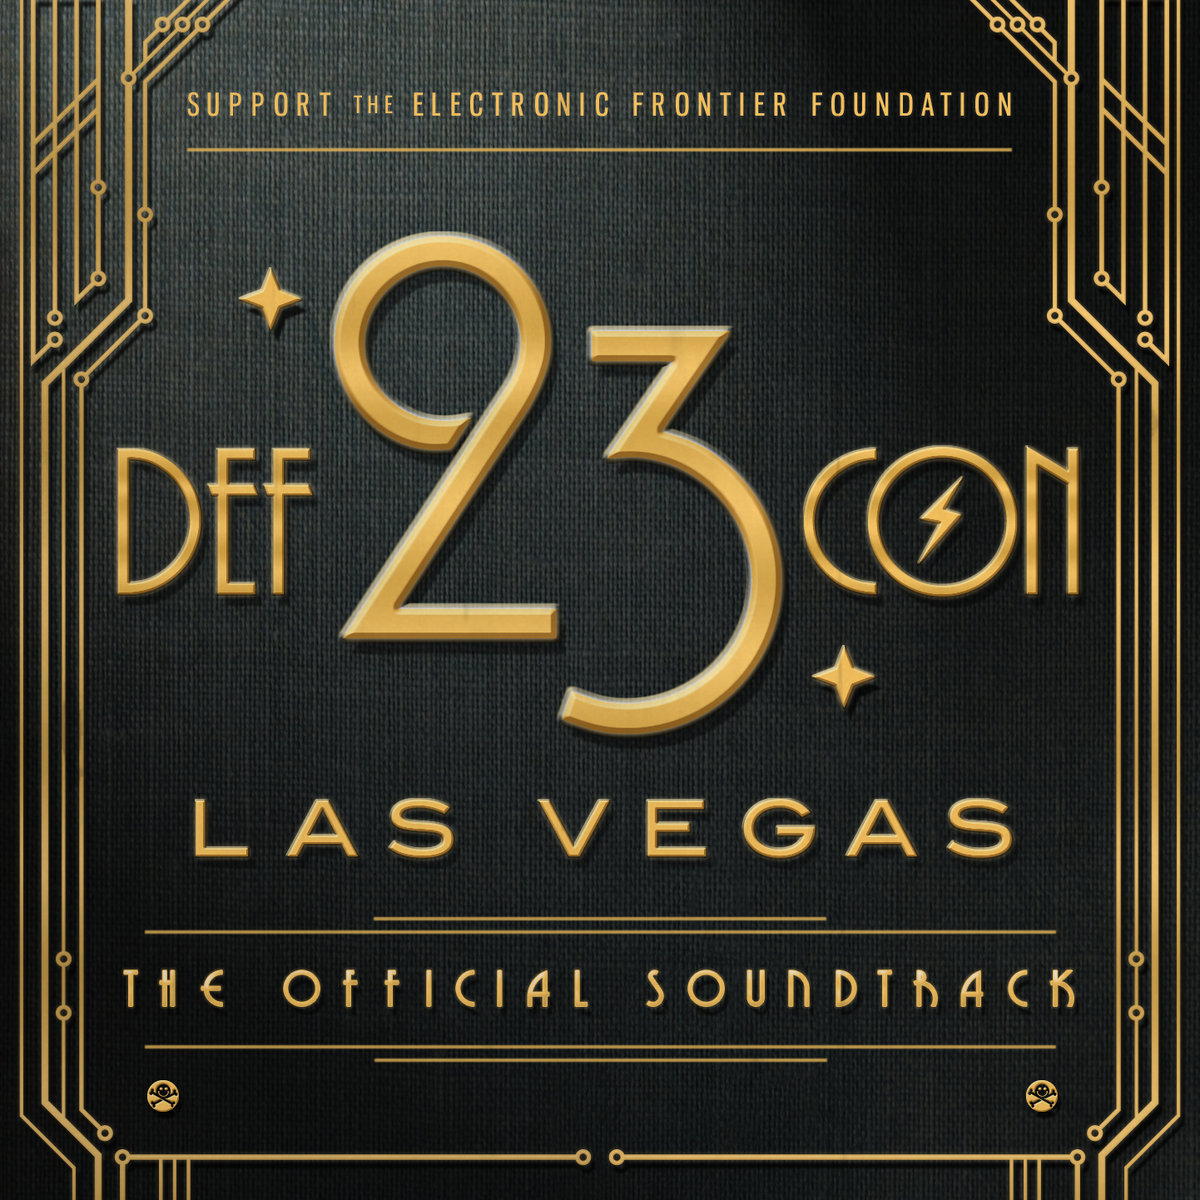 Elephant In The Room - String Me Along @ 'DEF CON 23: The Official Soundtrack' album (bass, charity)